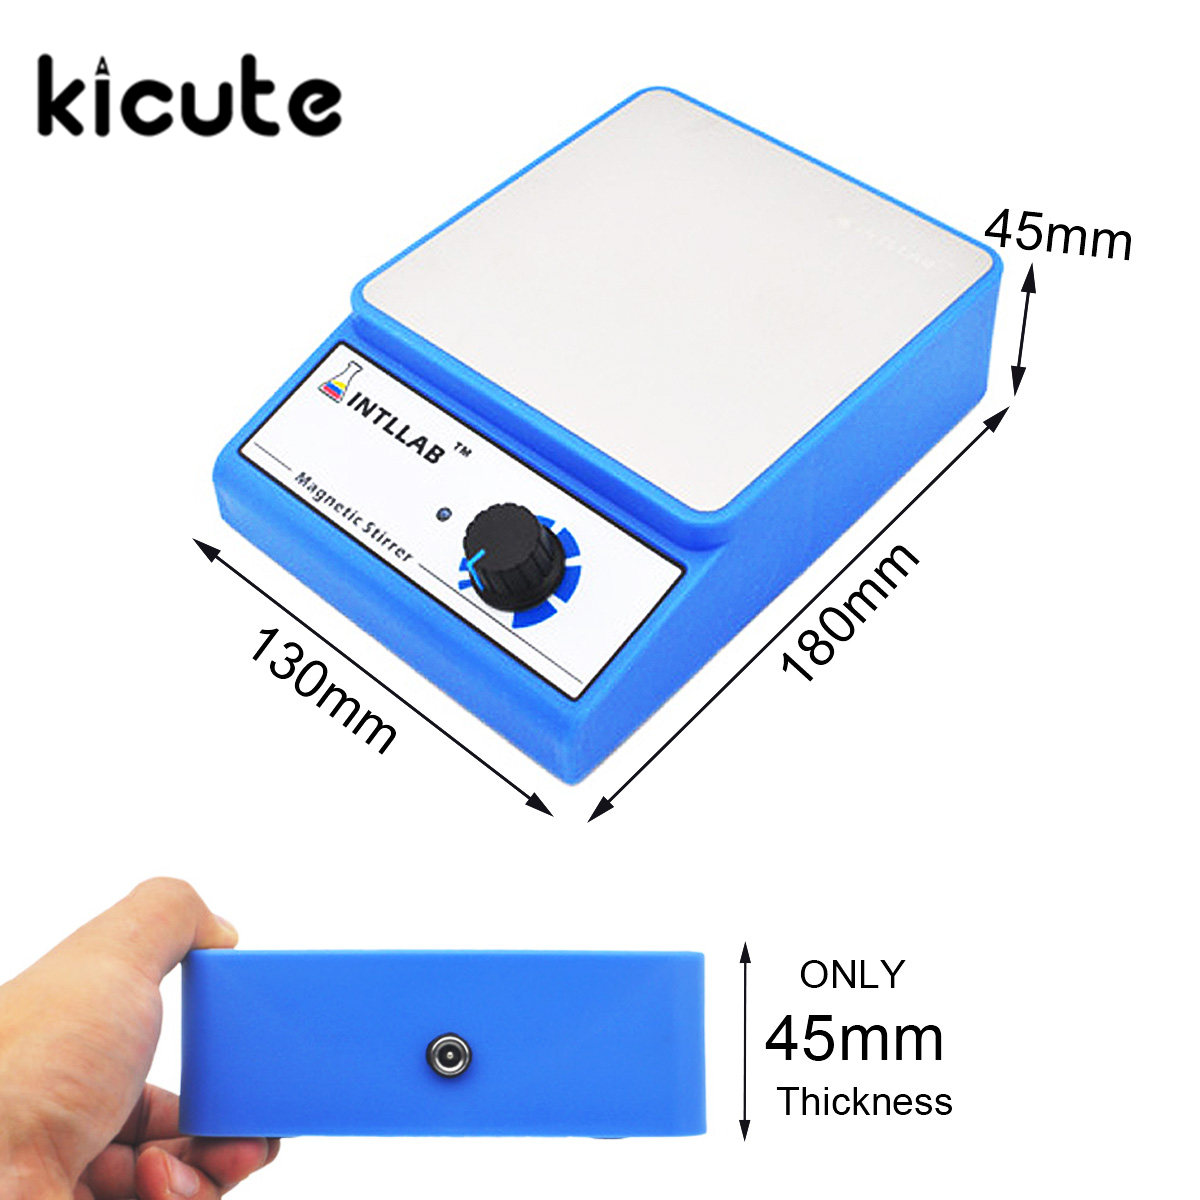 KiCute New Laboratory Chemistry Magnetic Stirrer Magnetic Stirrer Home Laboratory Magnetic Mixer Stirrers Apparatus AC100-240V купить